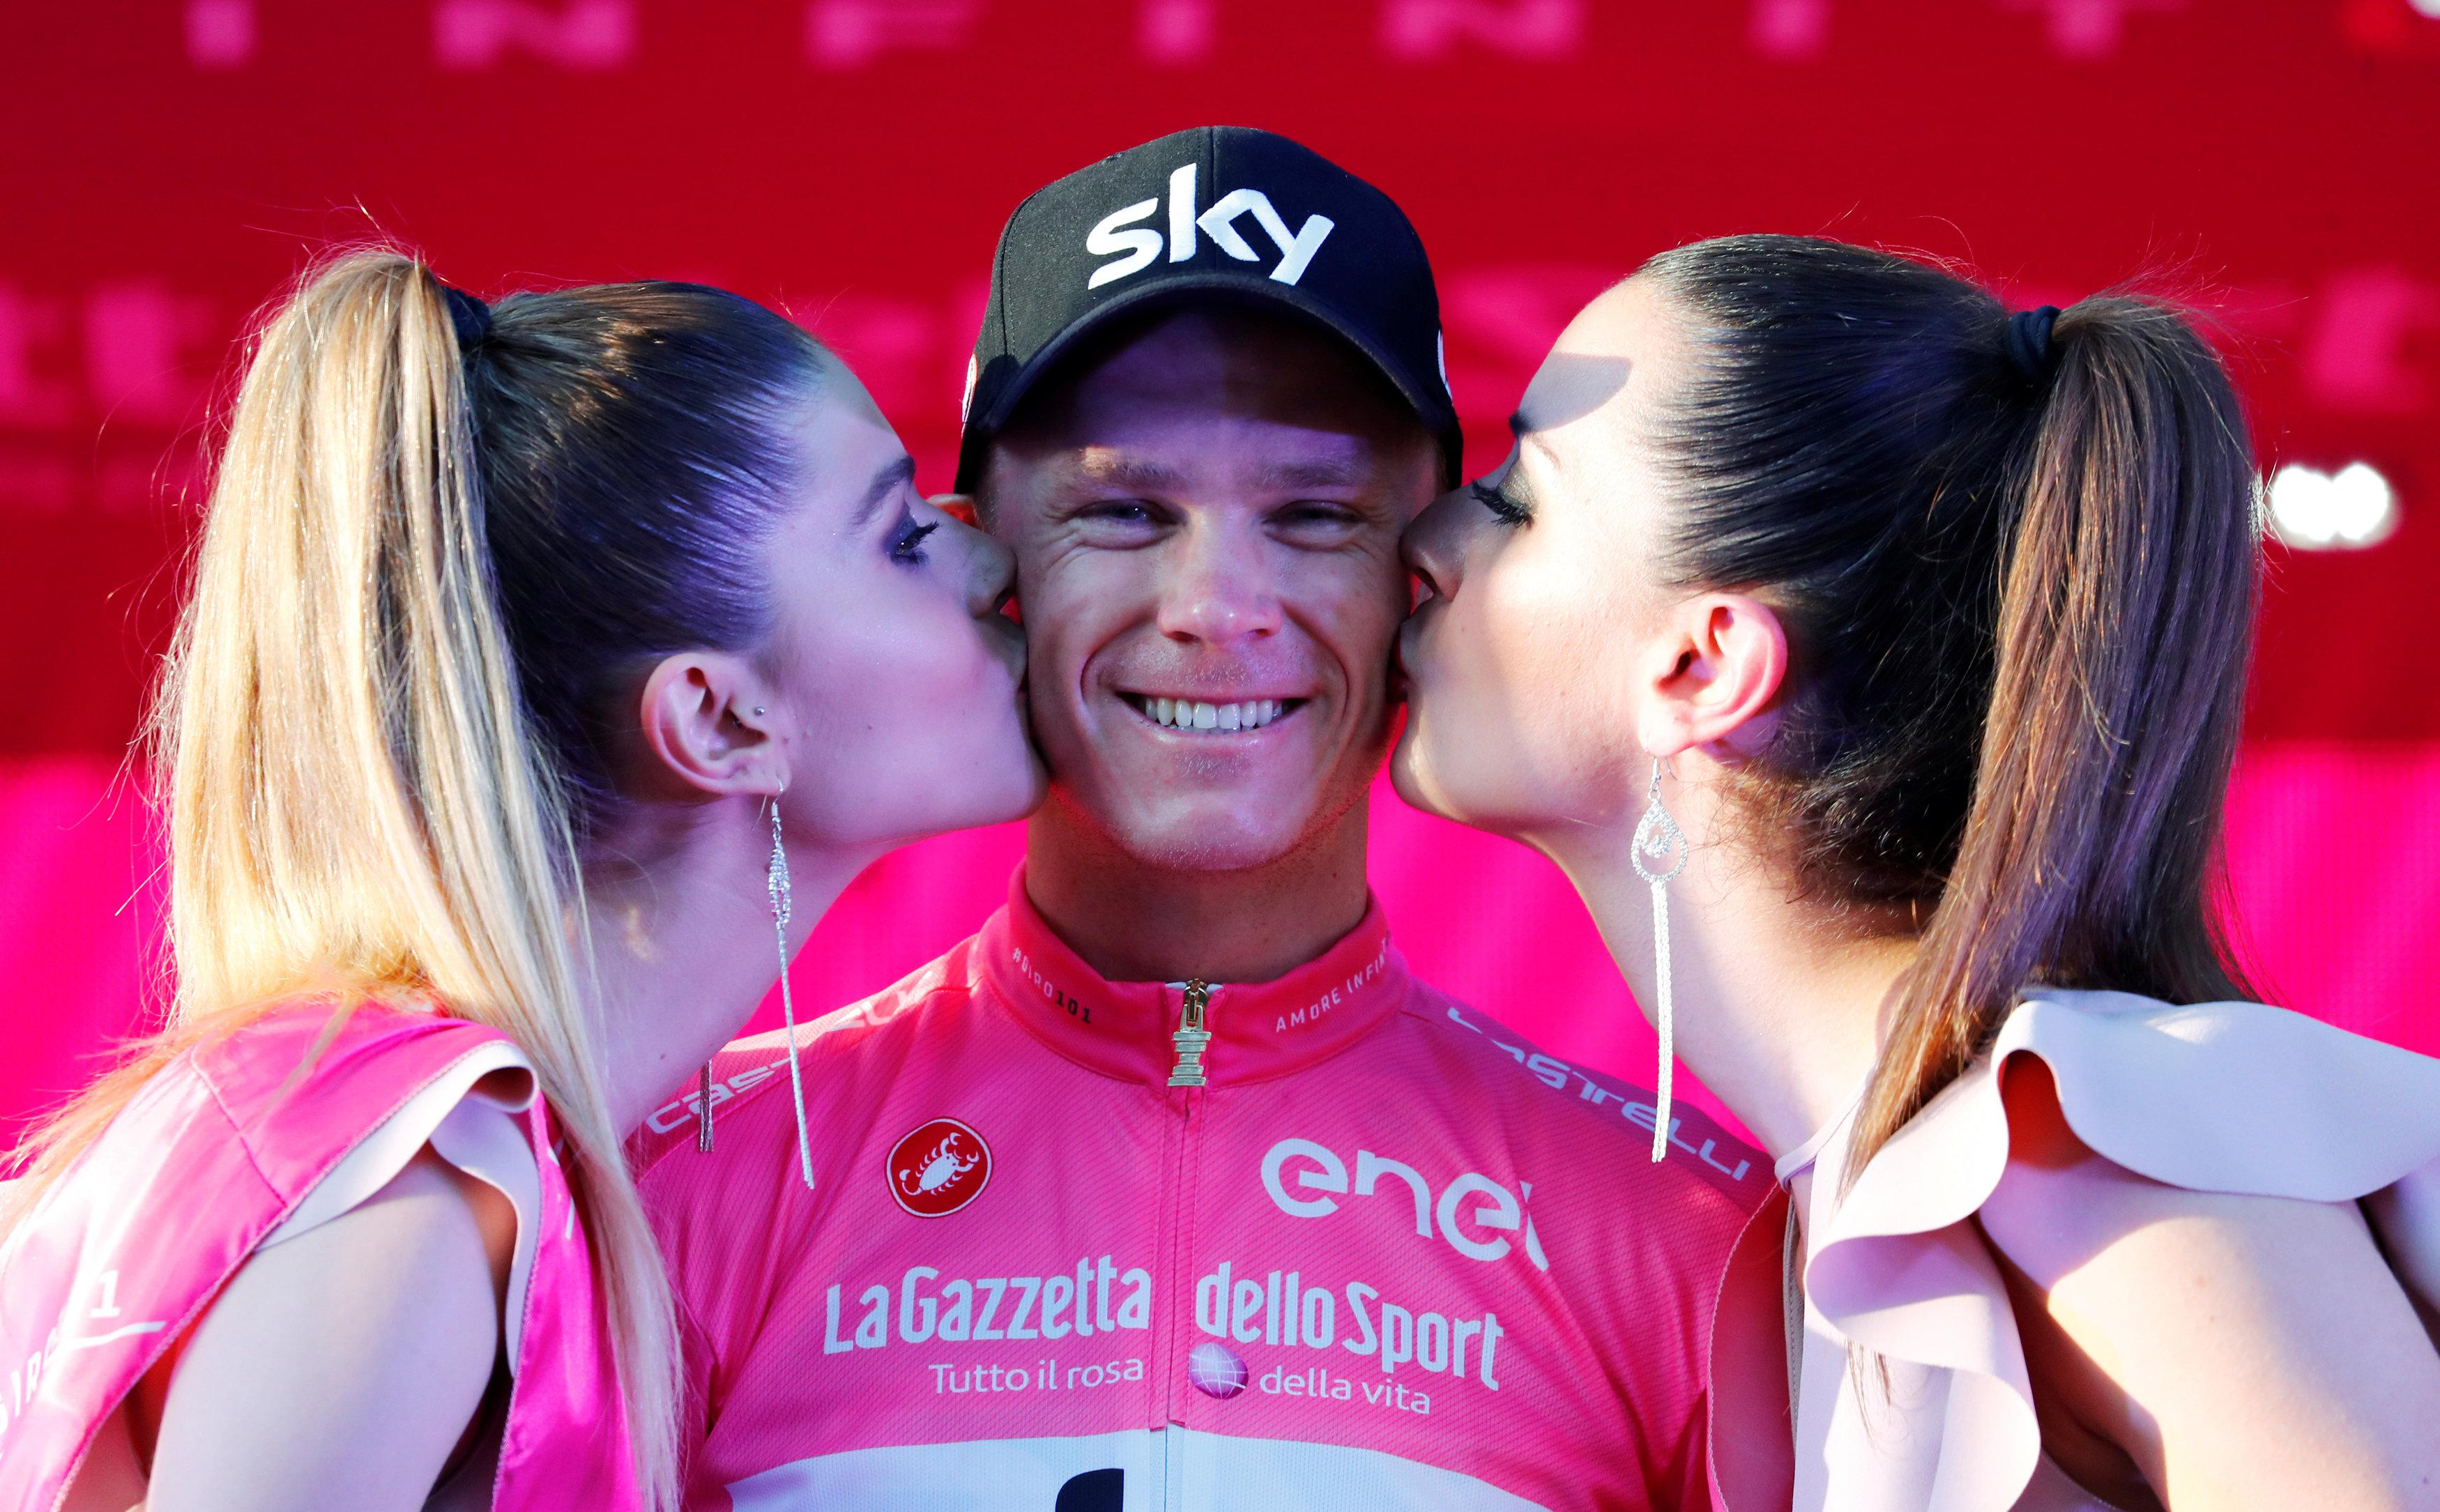 Froome is all smiles on the podium and the British rider is now in possession of all three Grand Tours